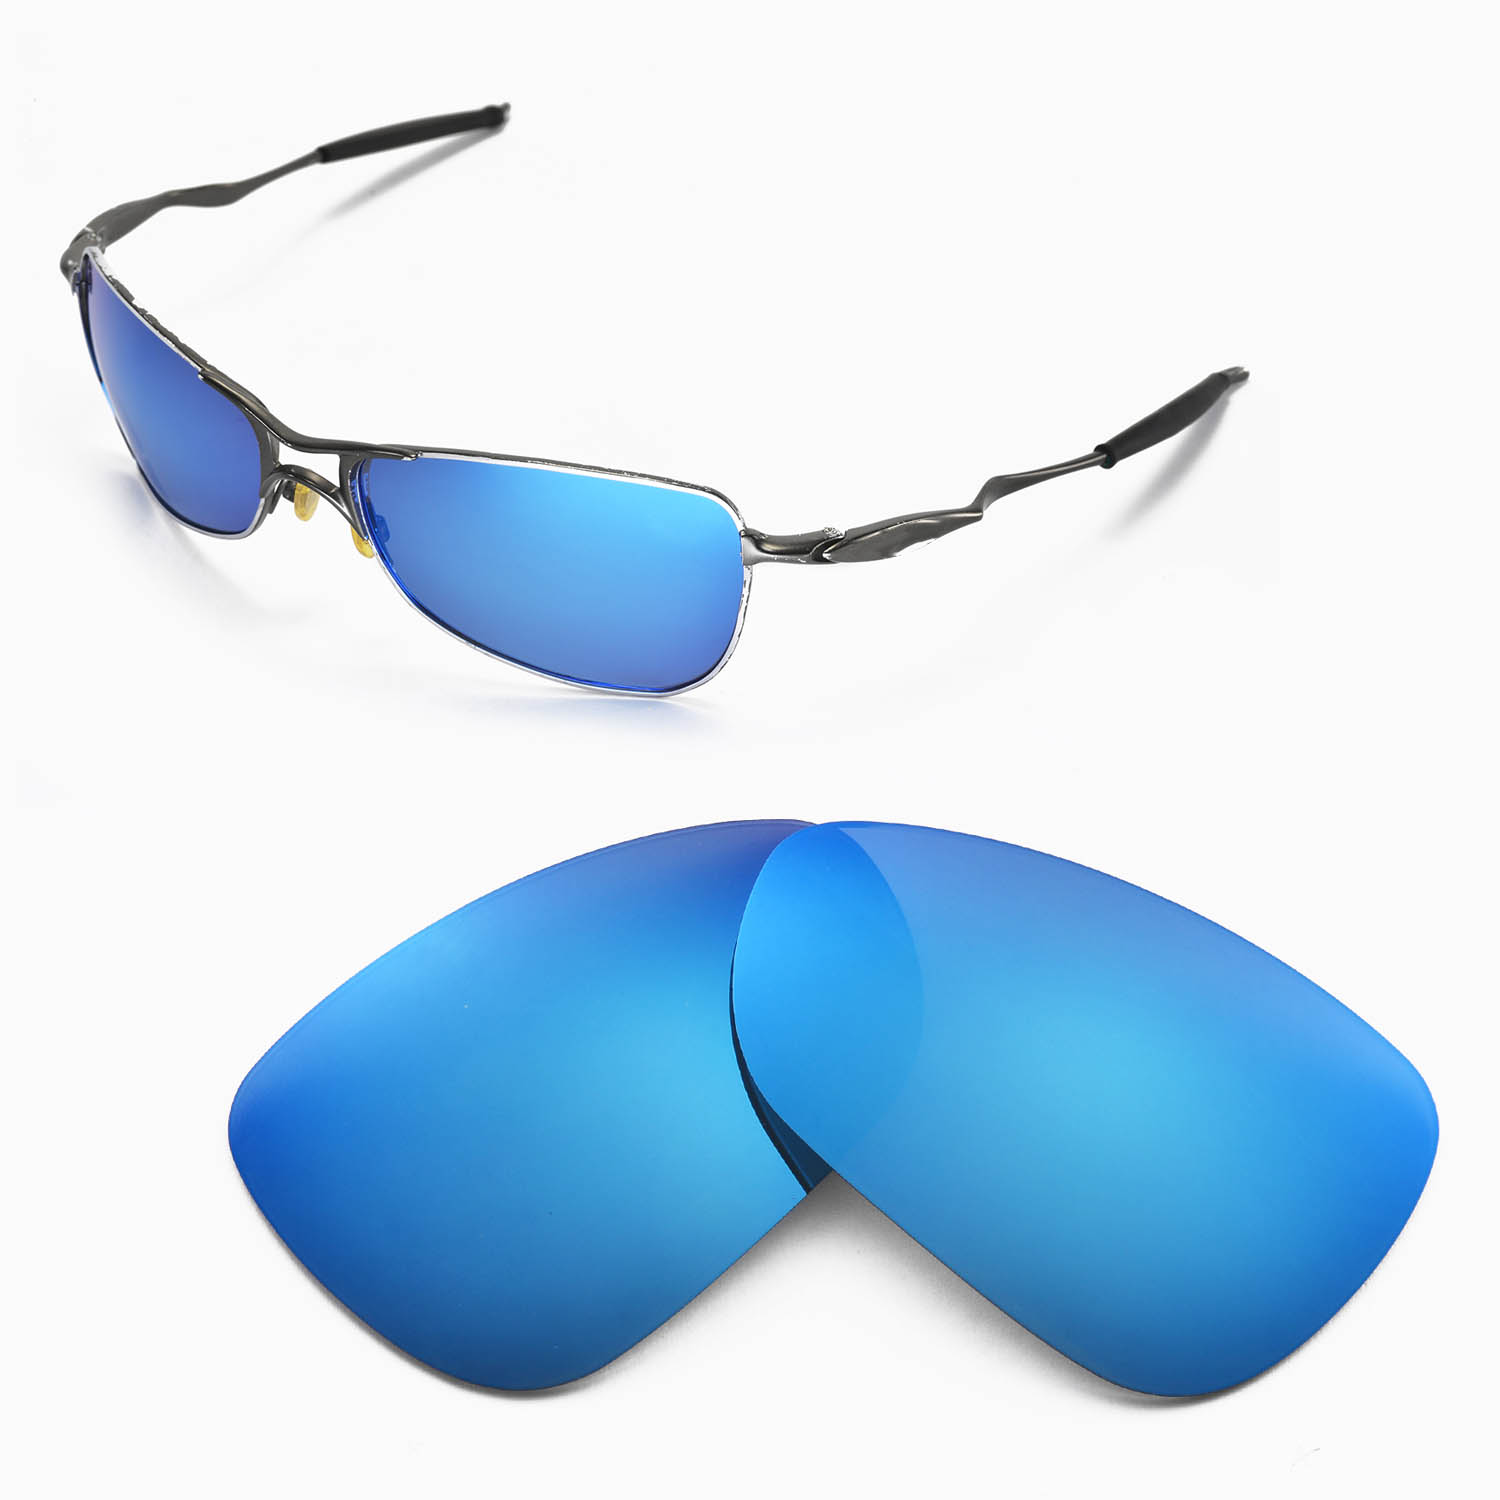 Oakley Crosshair Sunglasses  new wl polarized ice blue replacement lenses for oakley crosshair